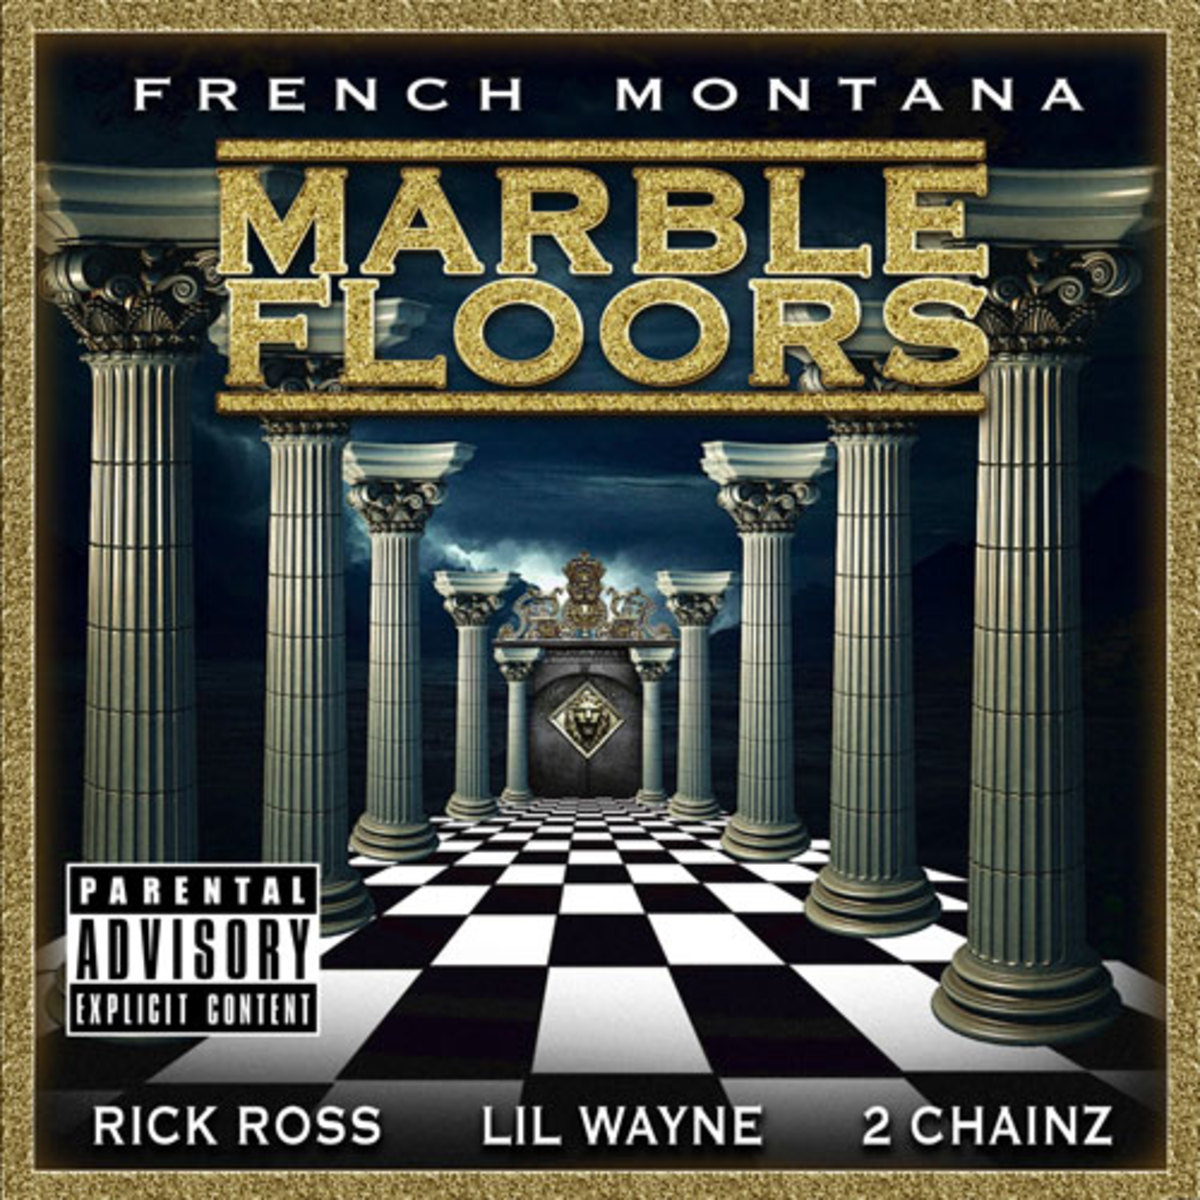 frenchmontana-marblefloors.jpg